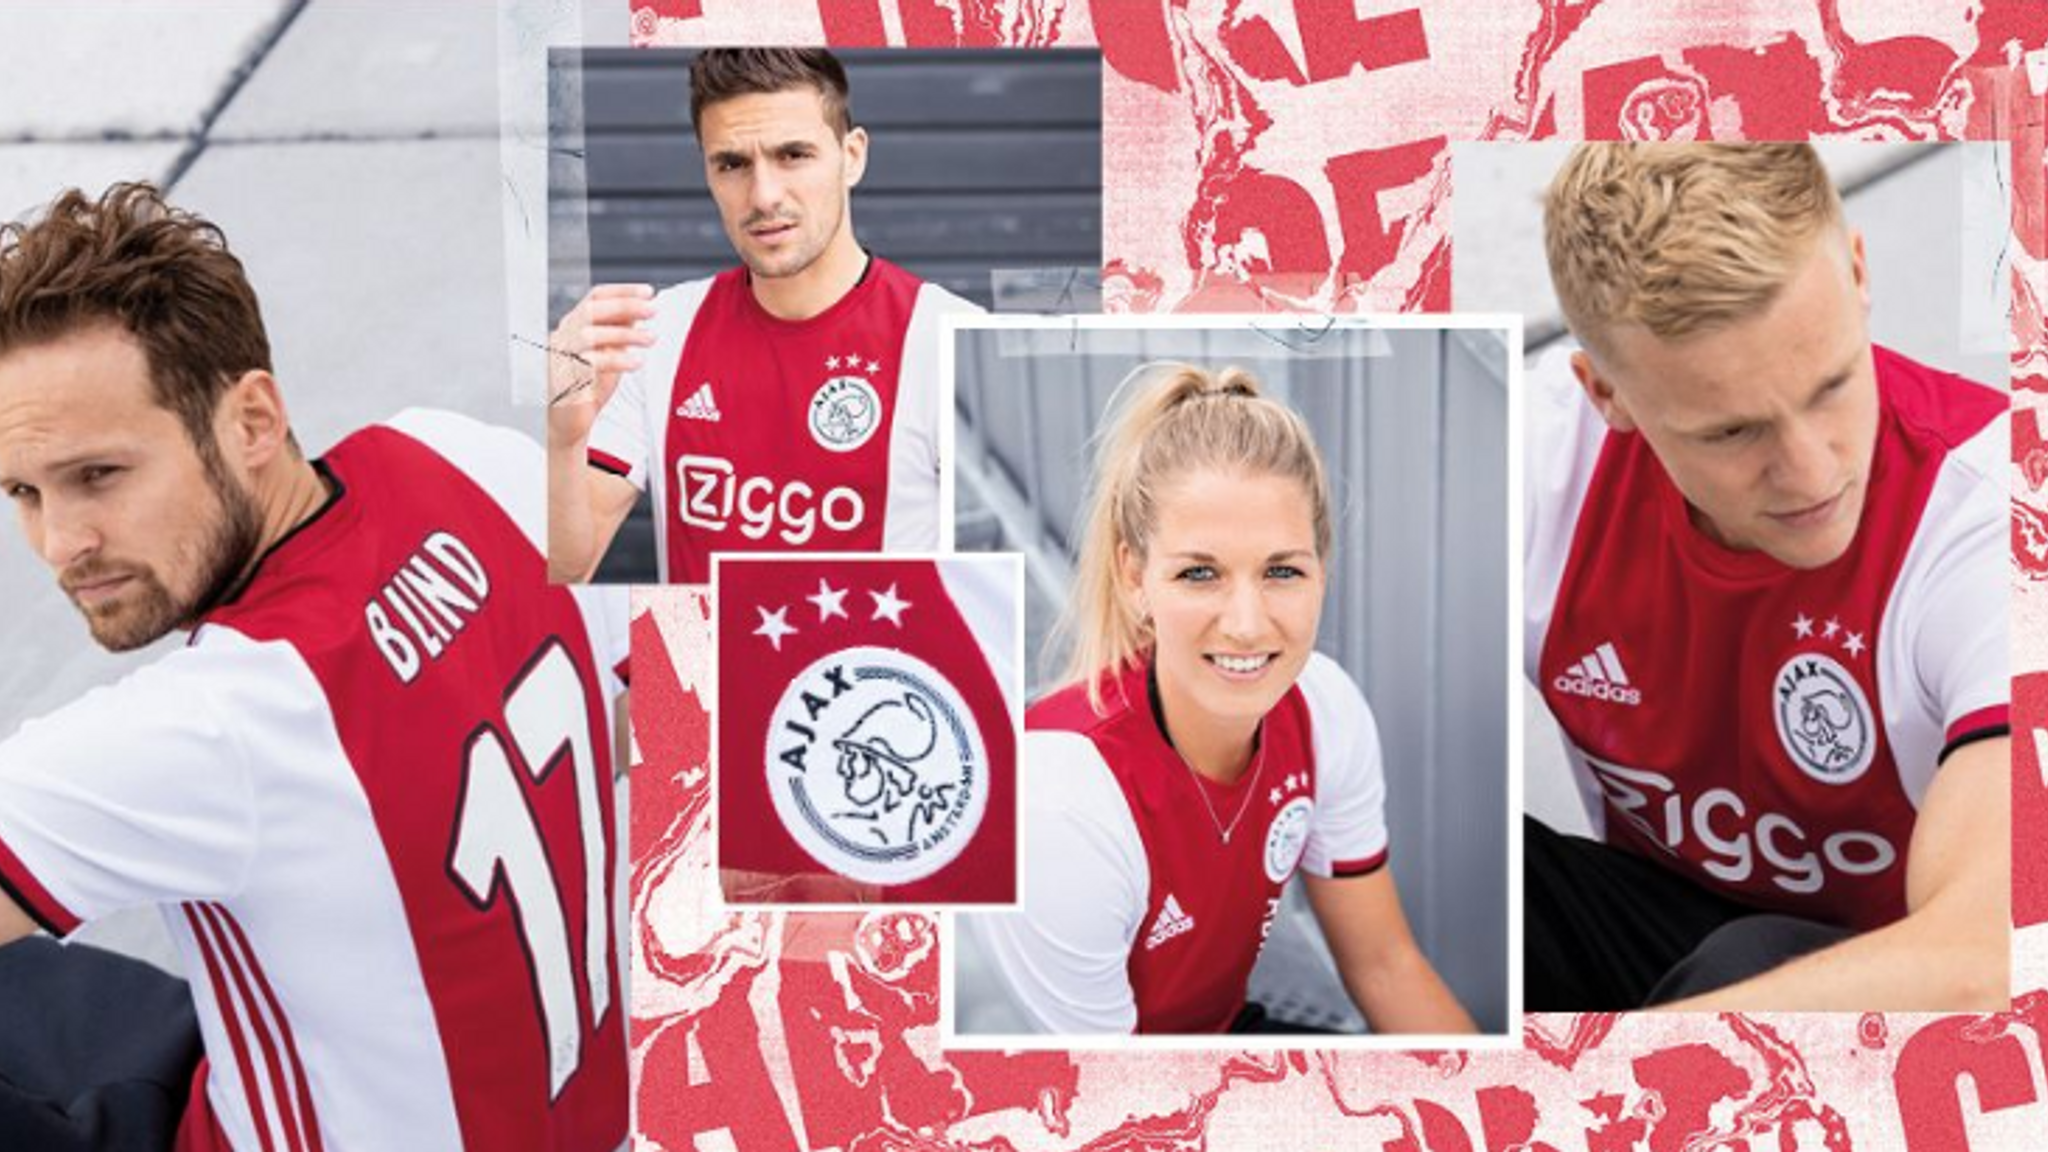 8bfb4978557 New European football kits for the 2019/20 season including Bayern Munich,  Celtic and more | Football News | Sky Sports